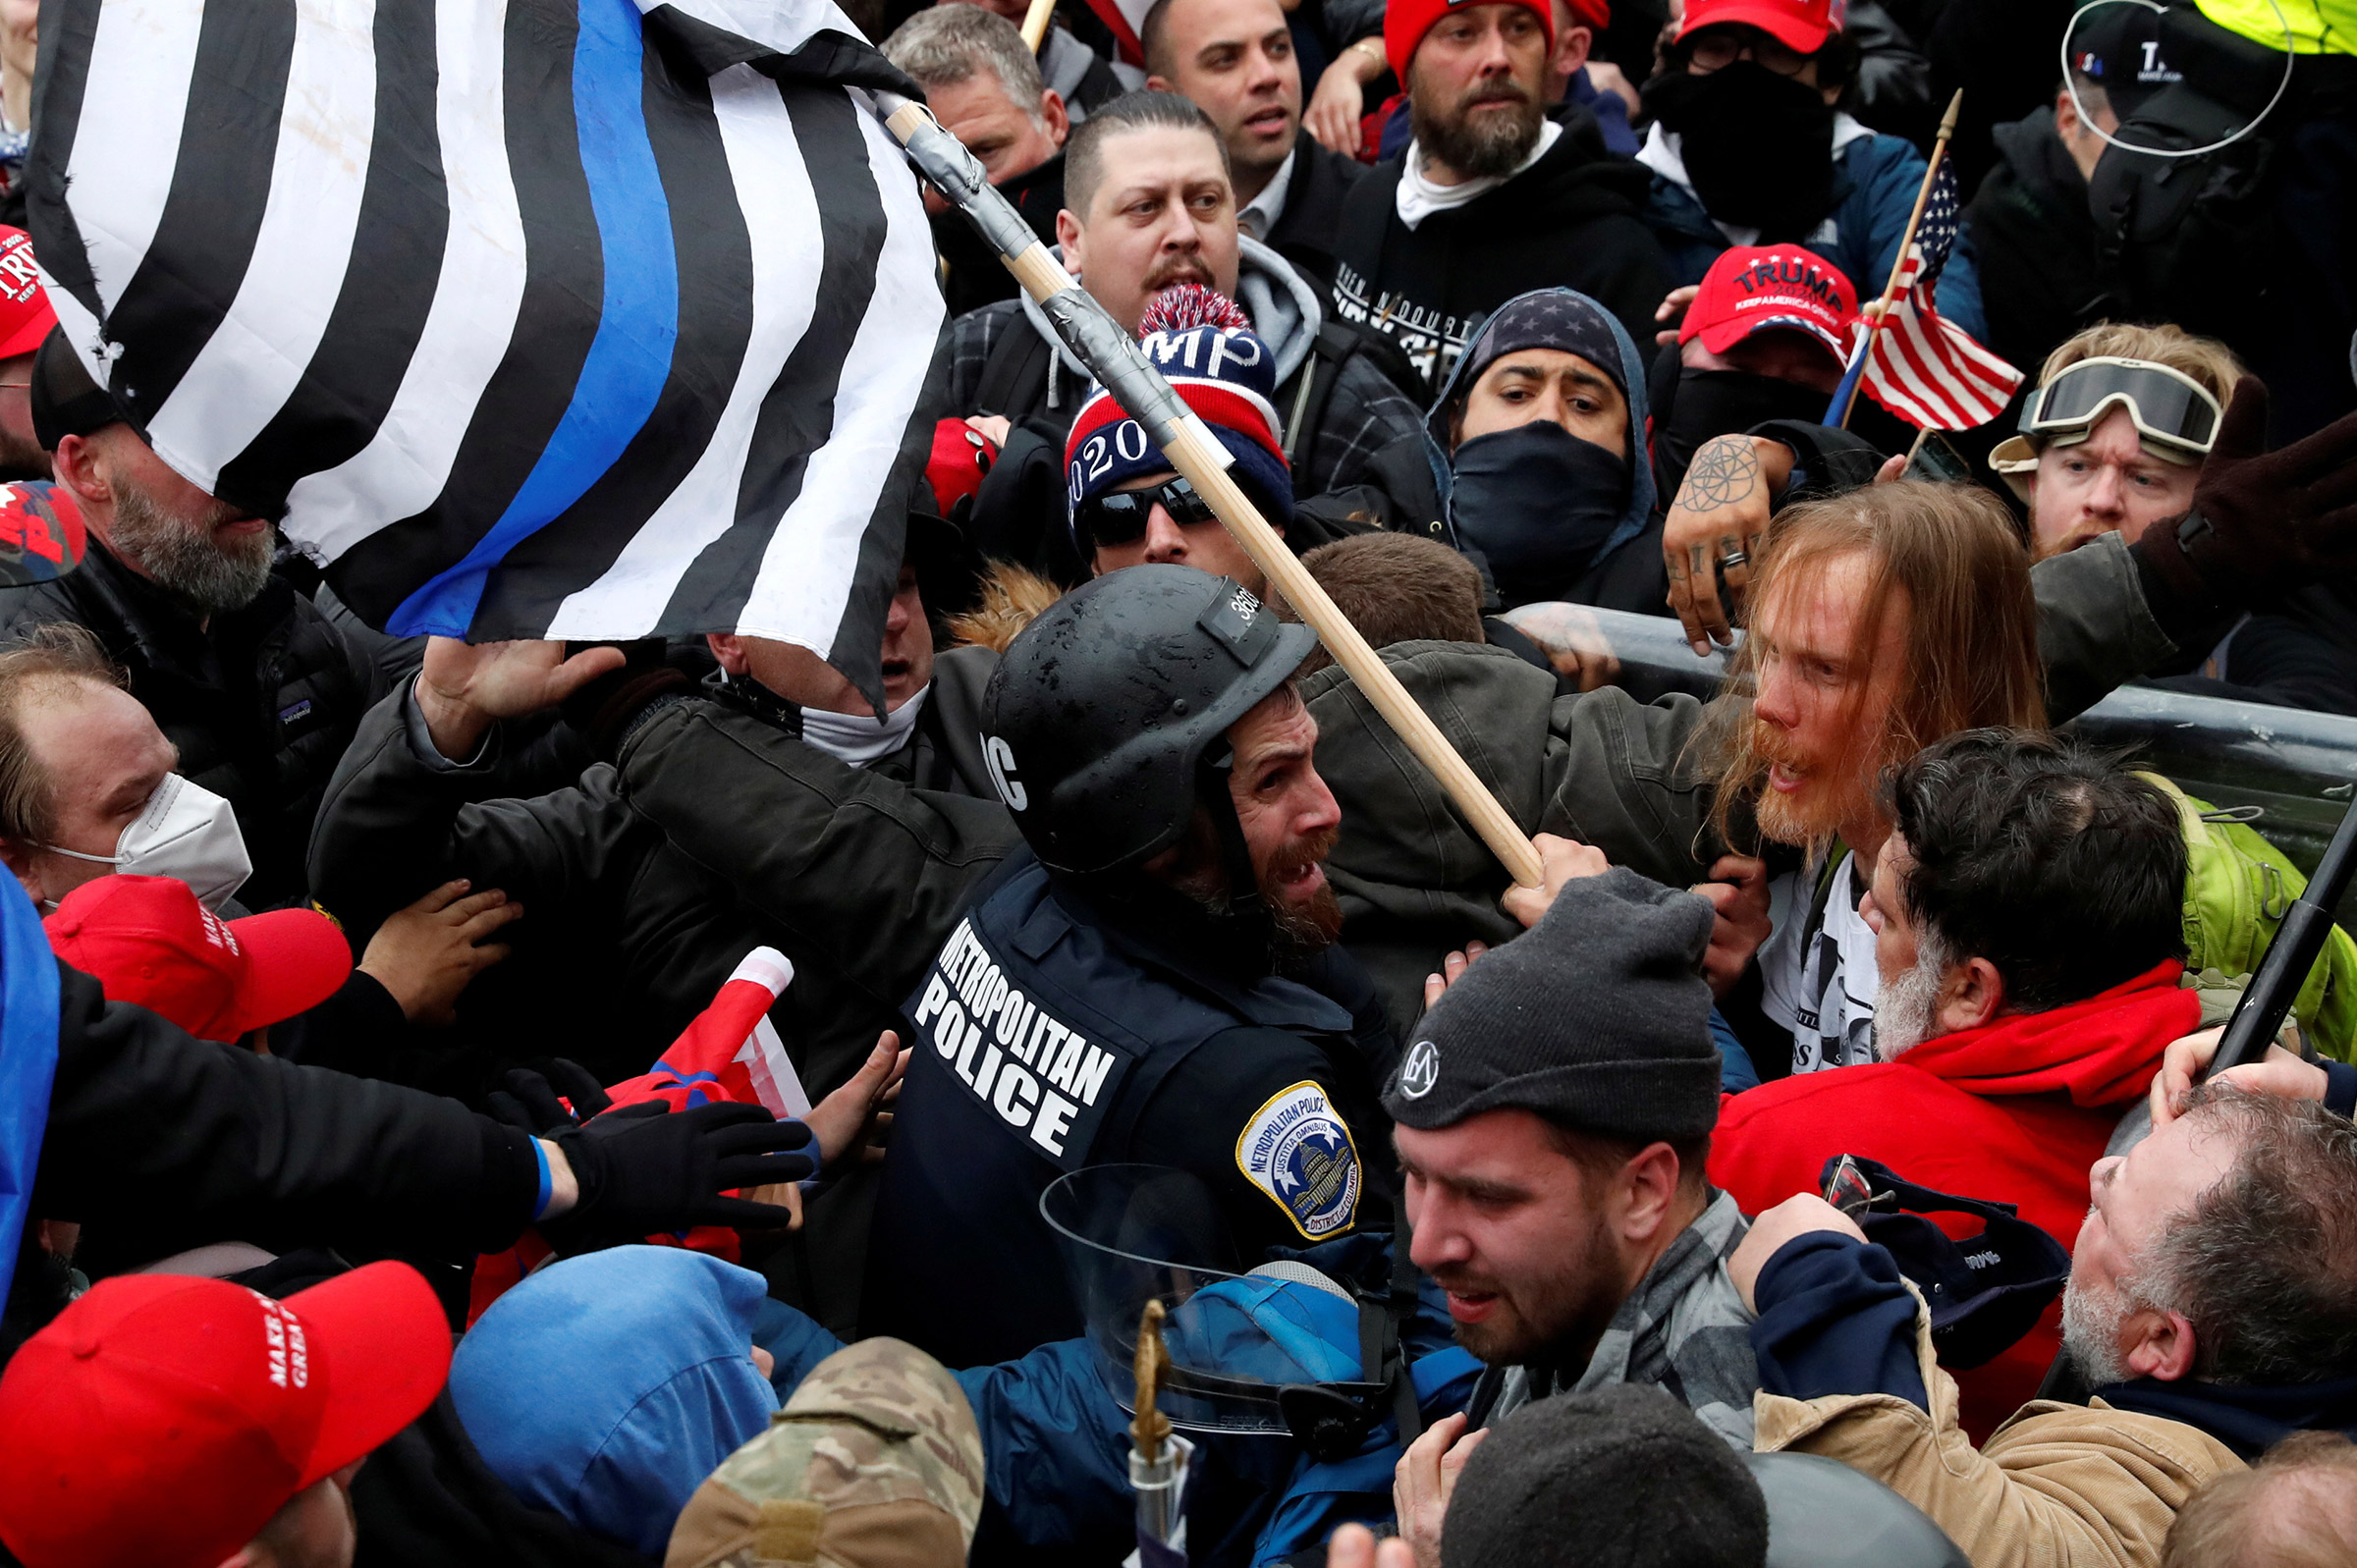 Fanone, in uniform and helmet, was nearly killed on Jan. 6 by a pro-Trump mob waving Thin-Blue-Line flags.